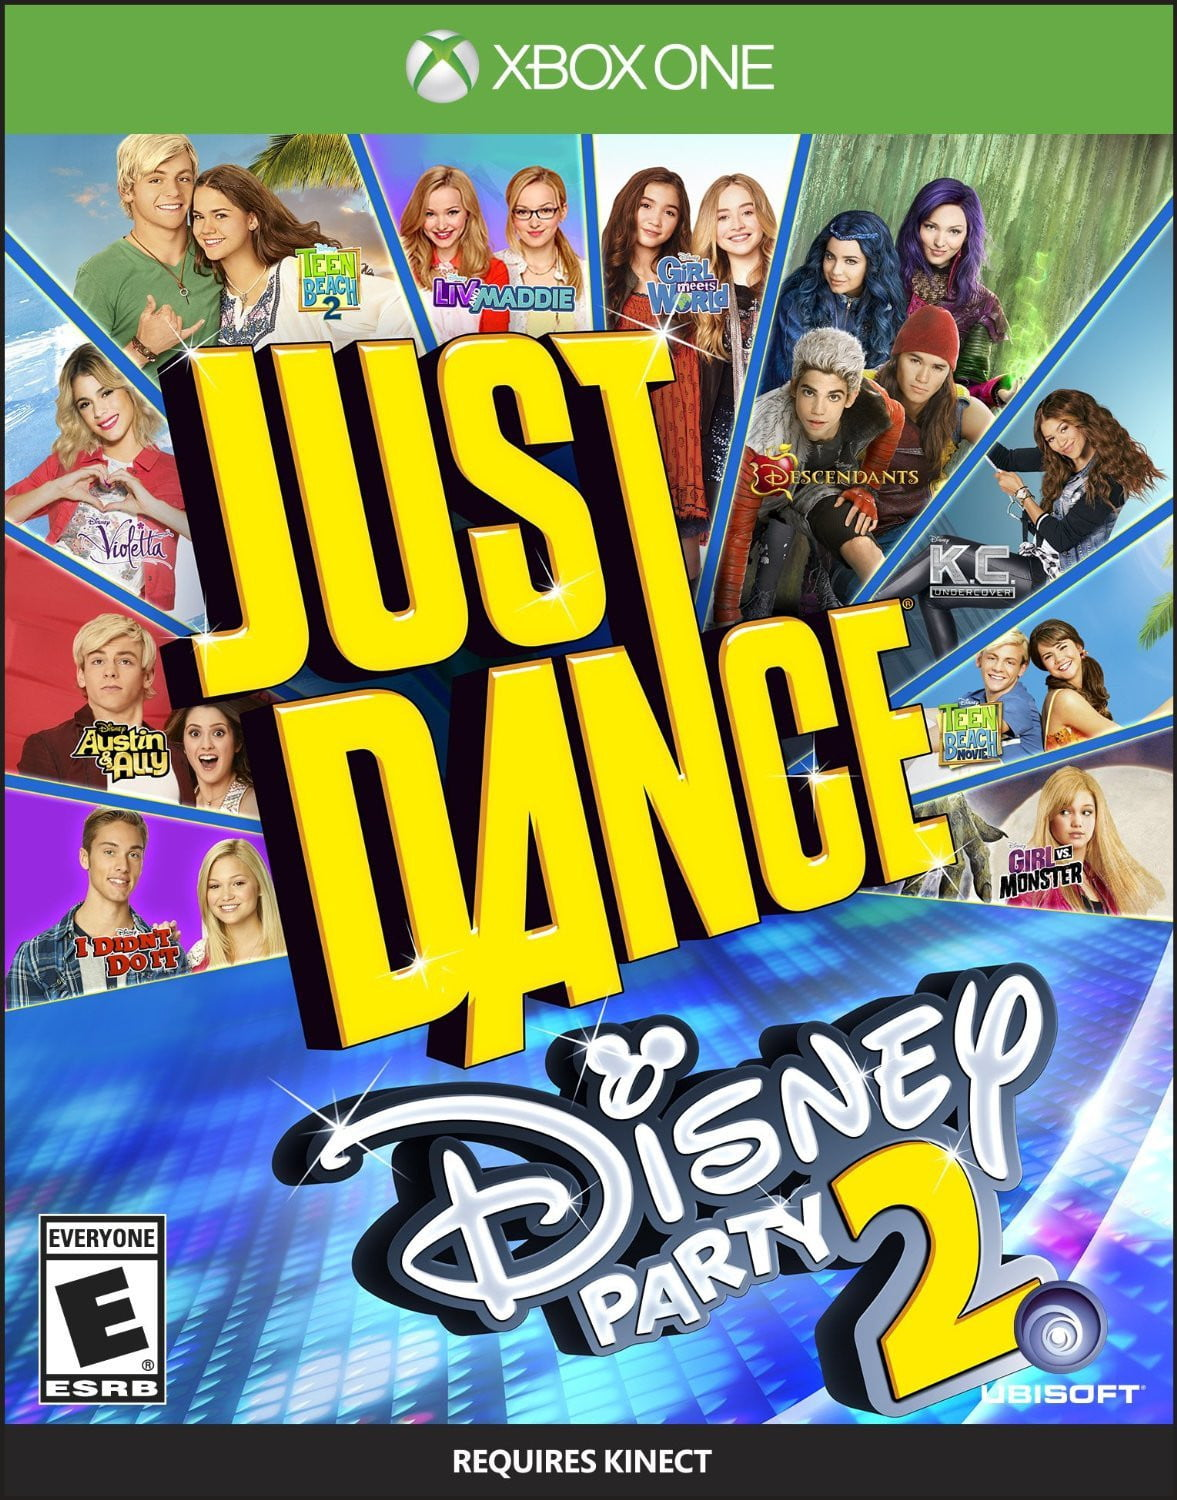 Buy Just dance Disney Party 2 (XBOX ONE) XBOX ONE in Egypt - Shamy Stores